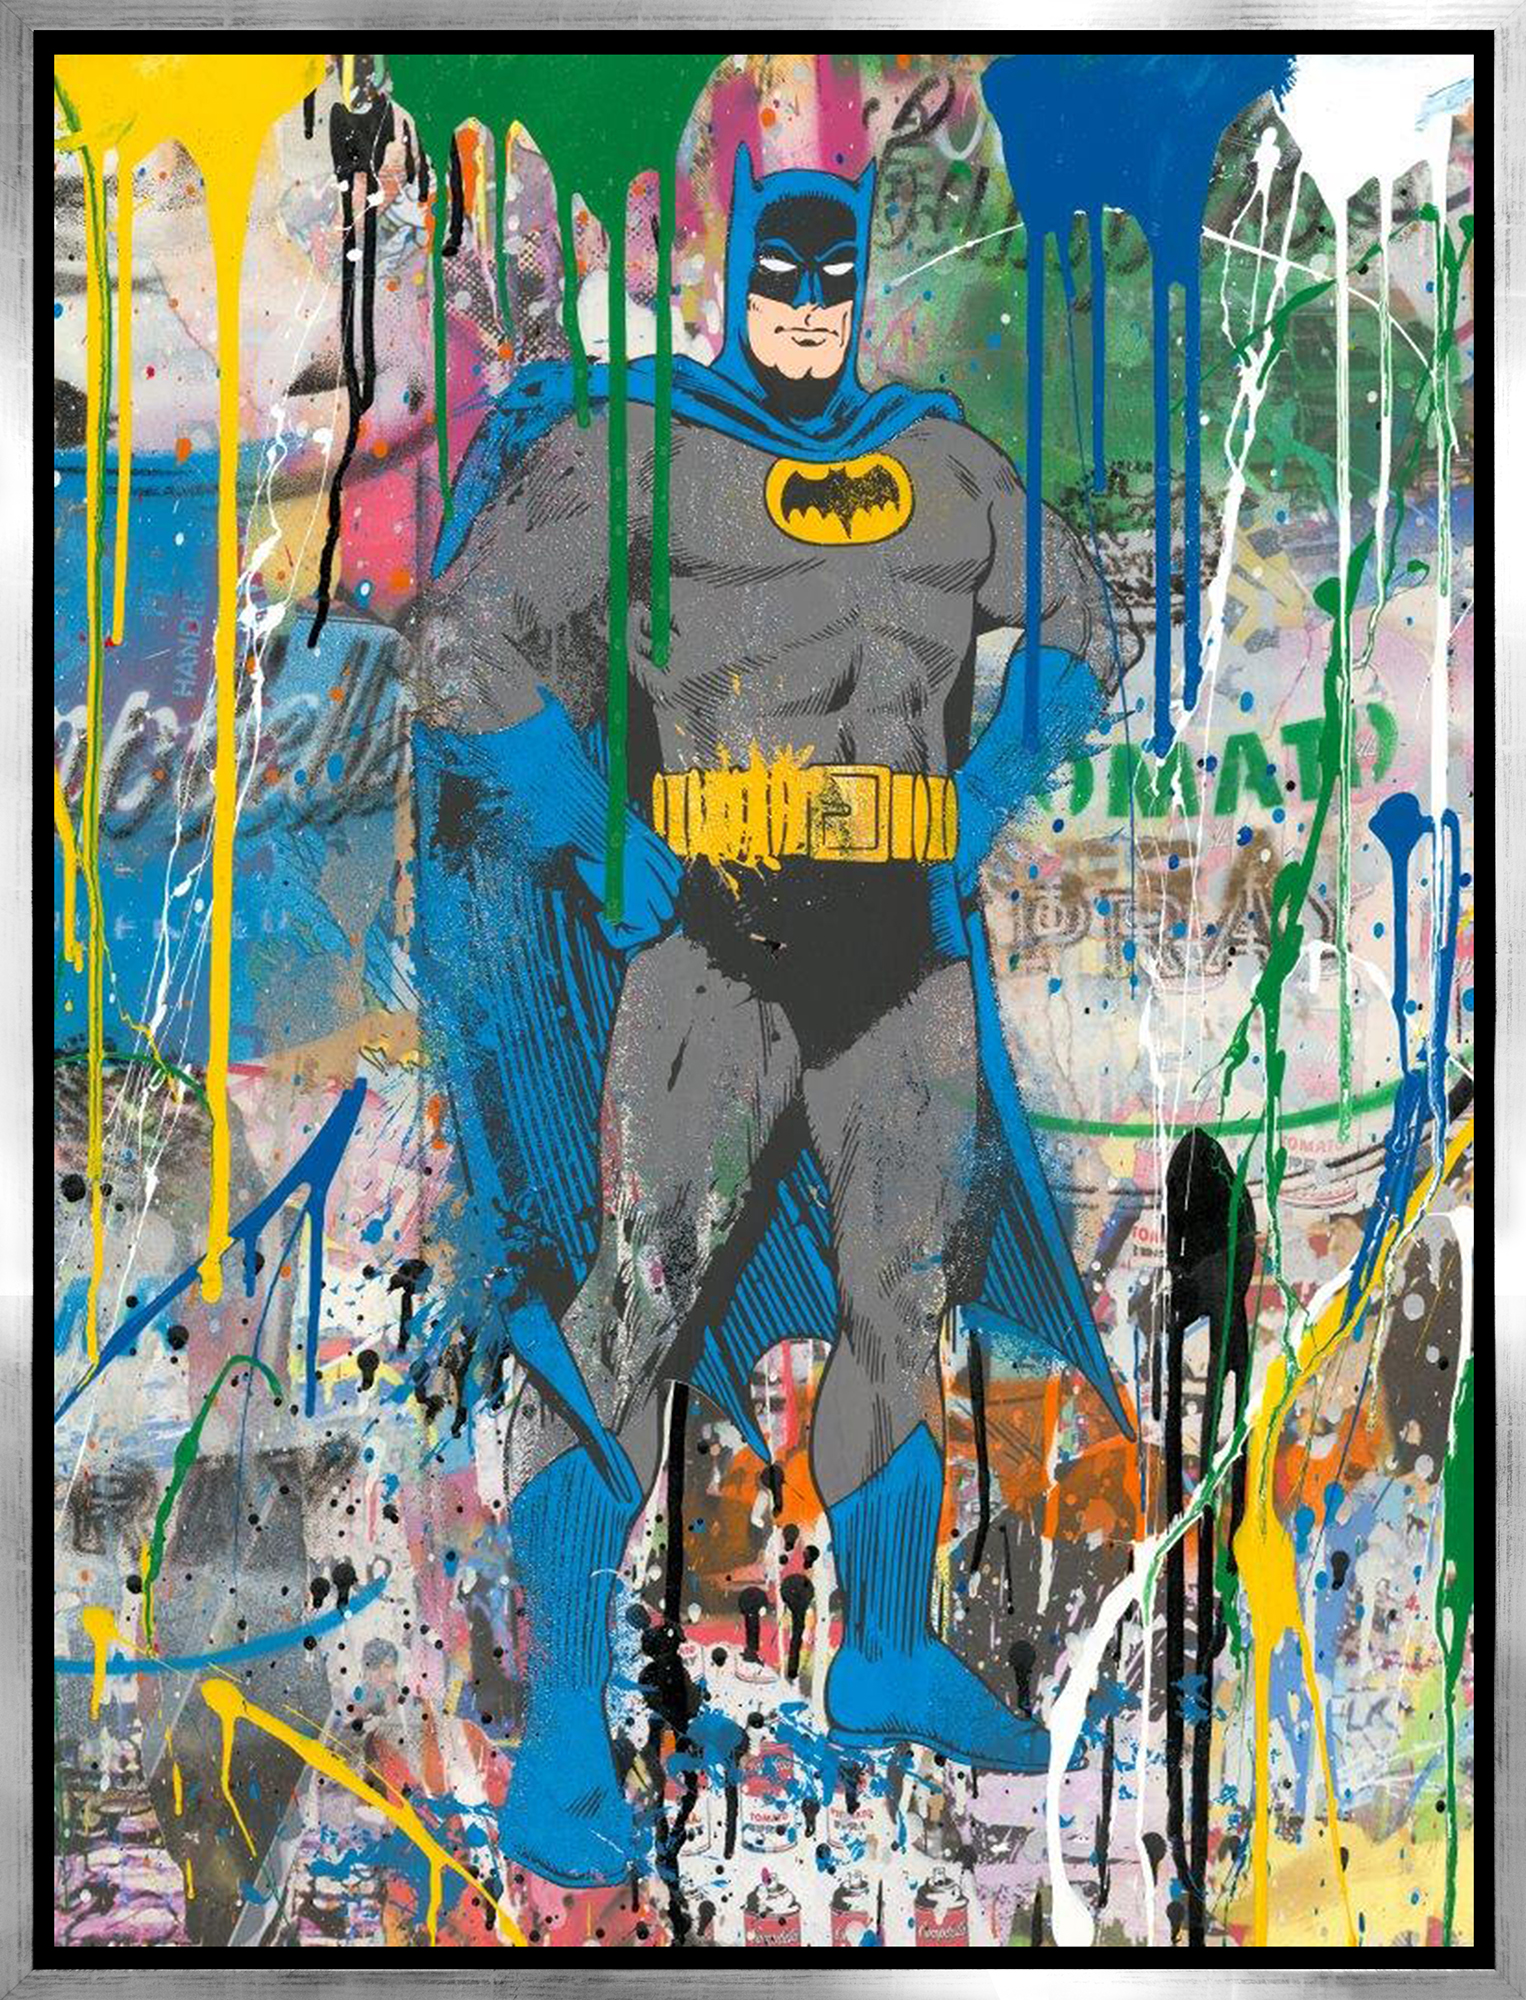 Mr. Brainwash - Batman , 9003-012-088